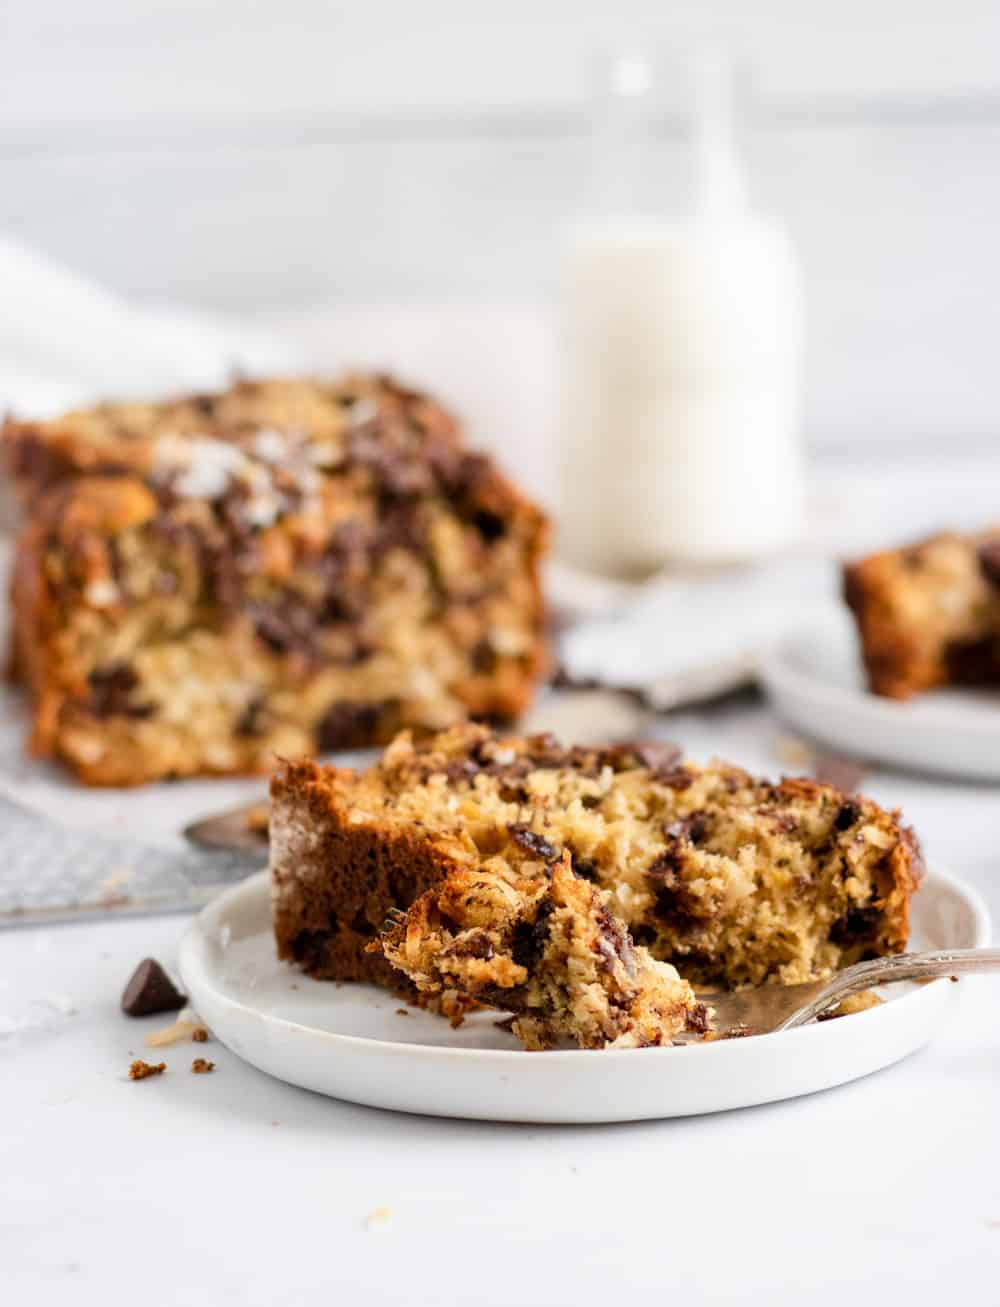 Slice of coconut chocolate chip banana bread on white plate with loaf cooling behind it.